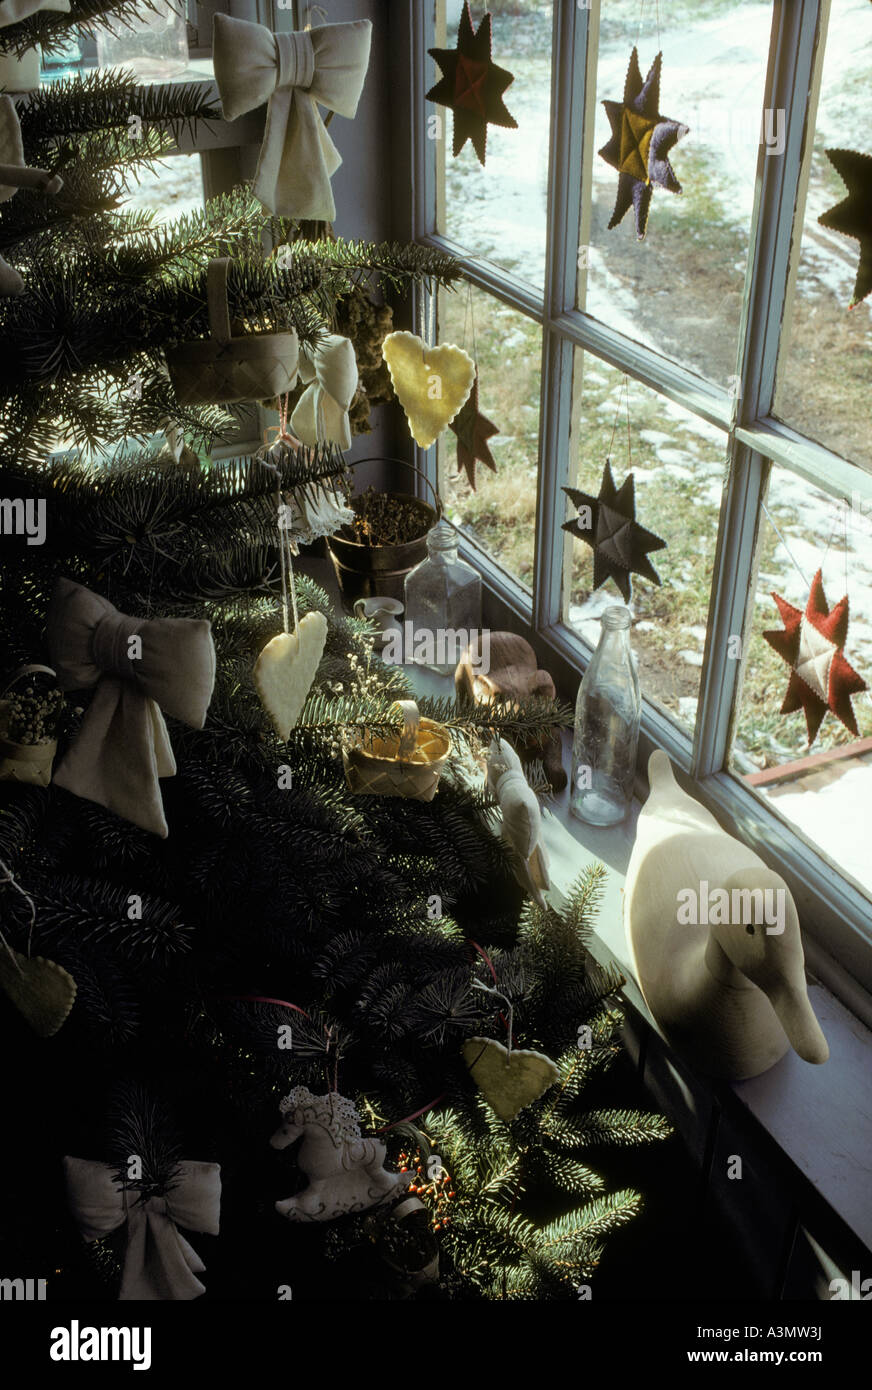 Stock Photo Home House Window Christmas Decorations Hearts Stars Cookies Tree Branch Wooden Decoy Duck